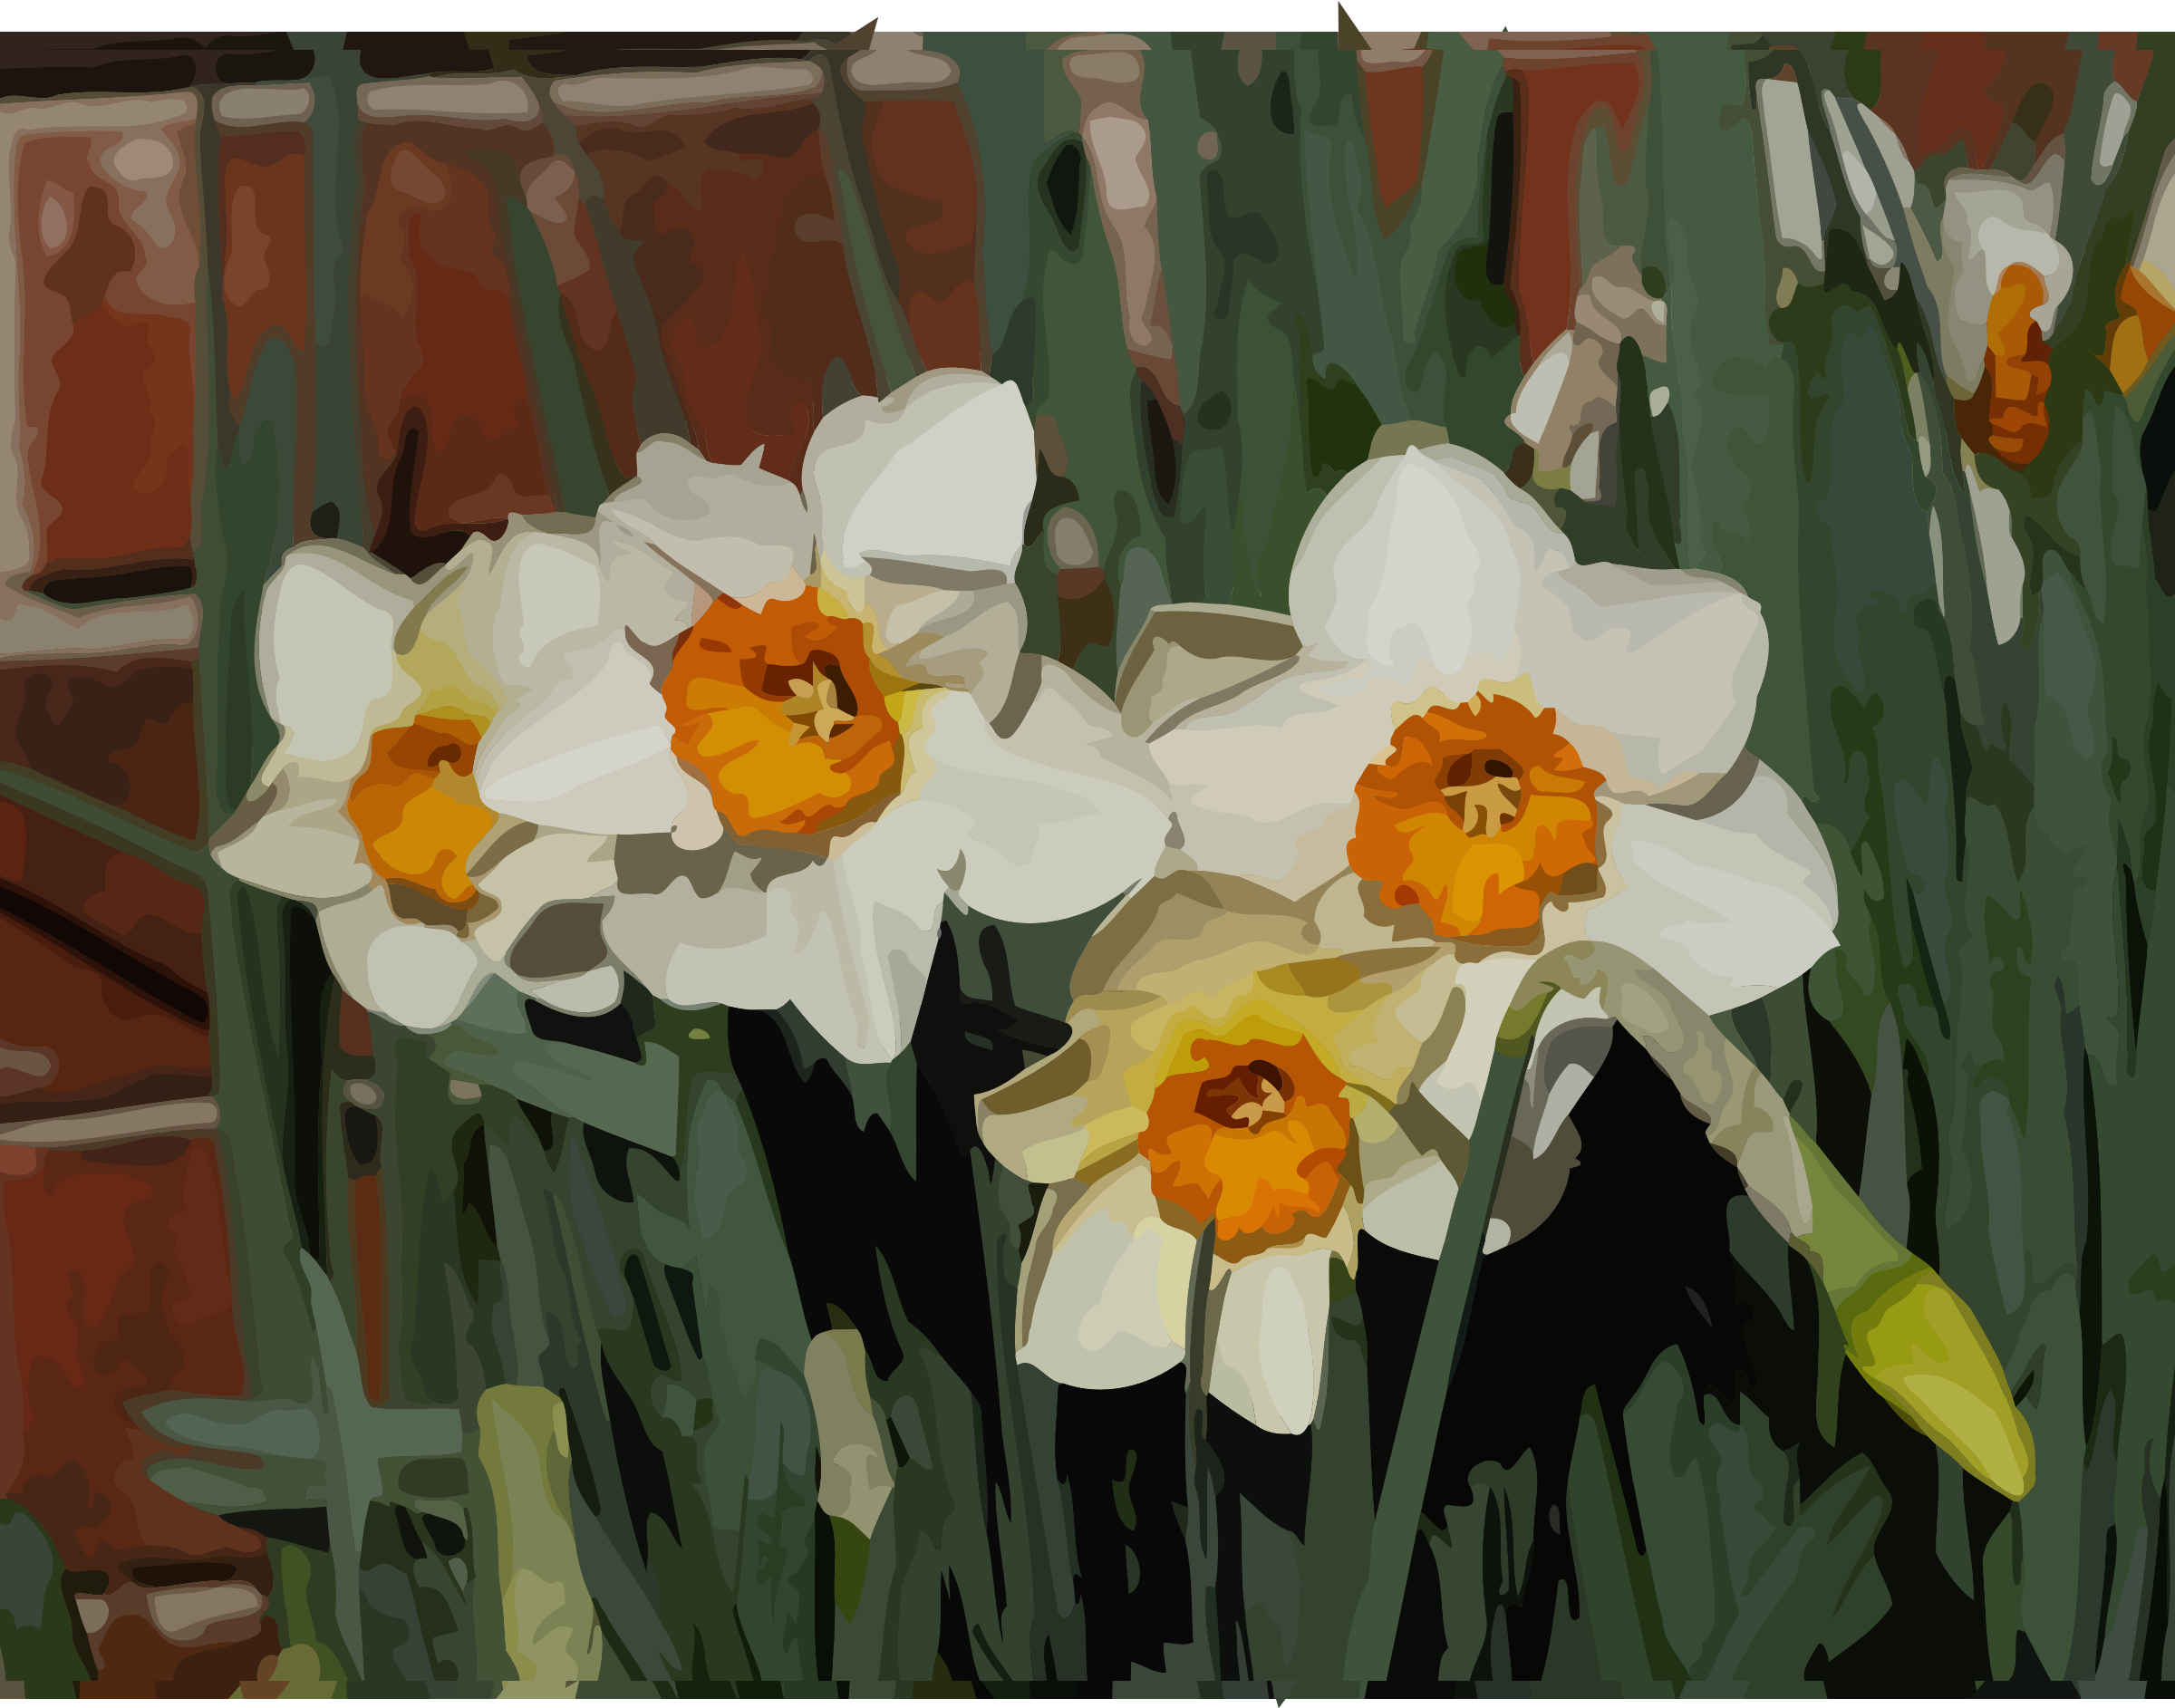 daffodils-02 by datteber